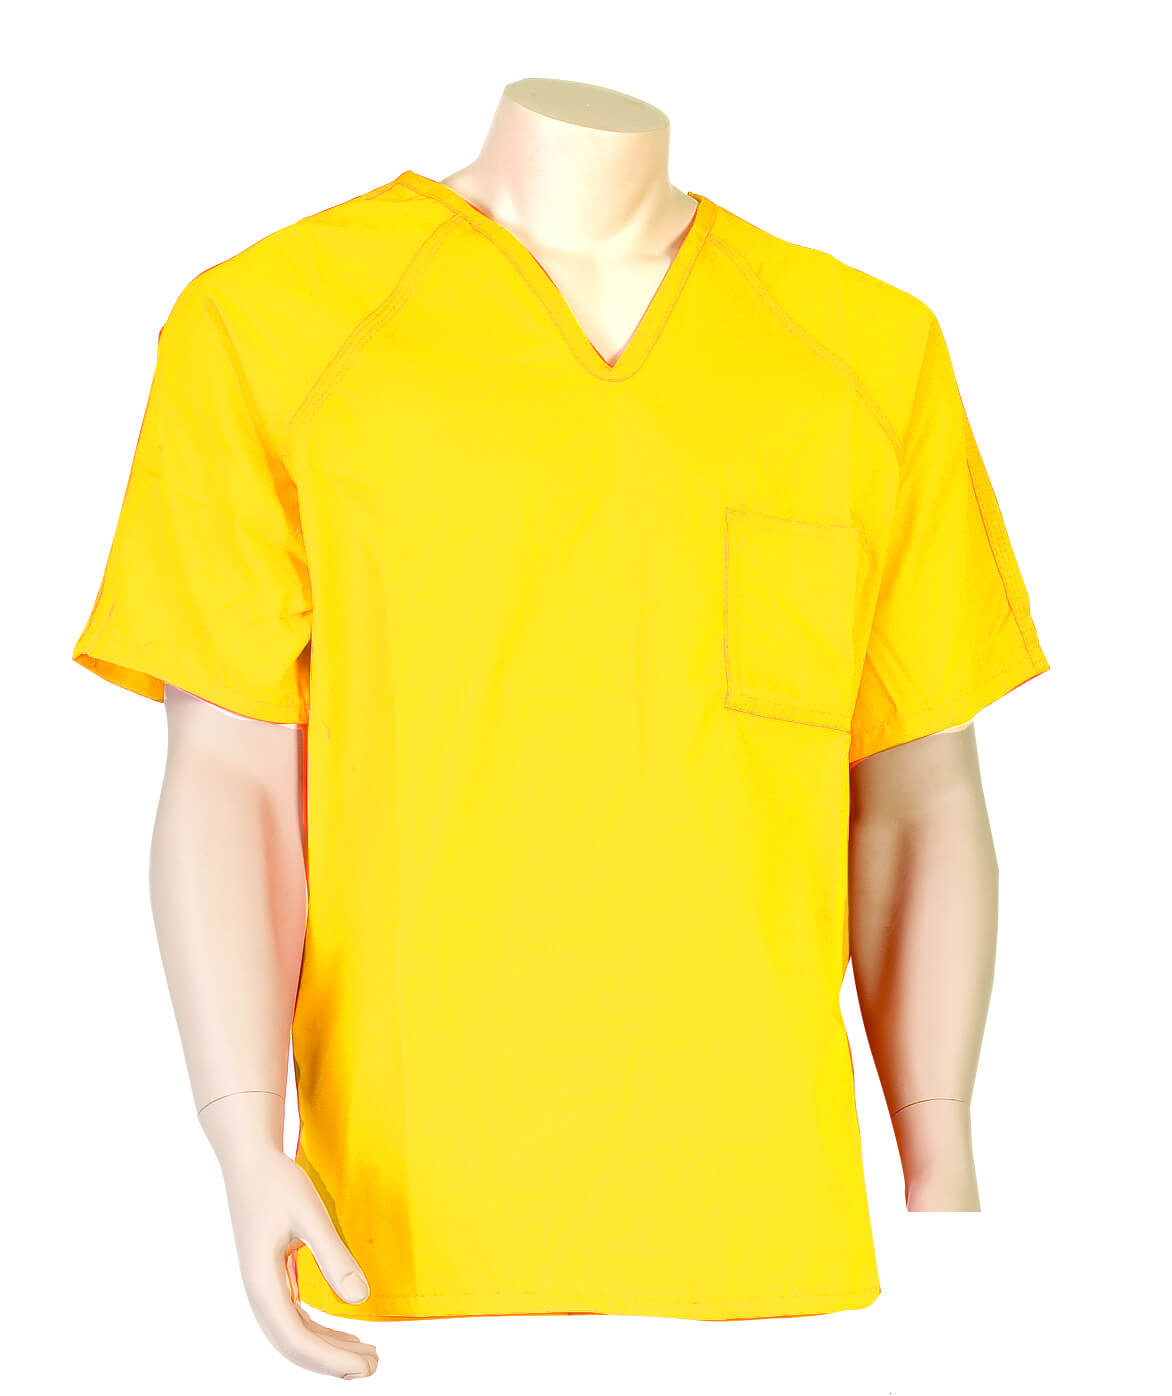 Solid Color Inmate Shirts